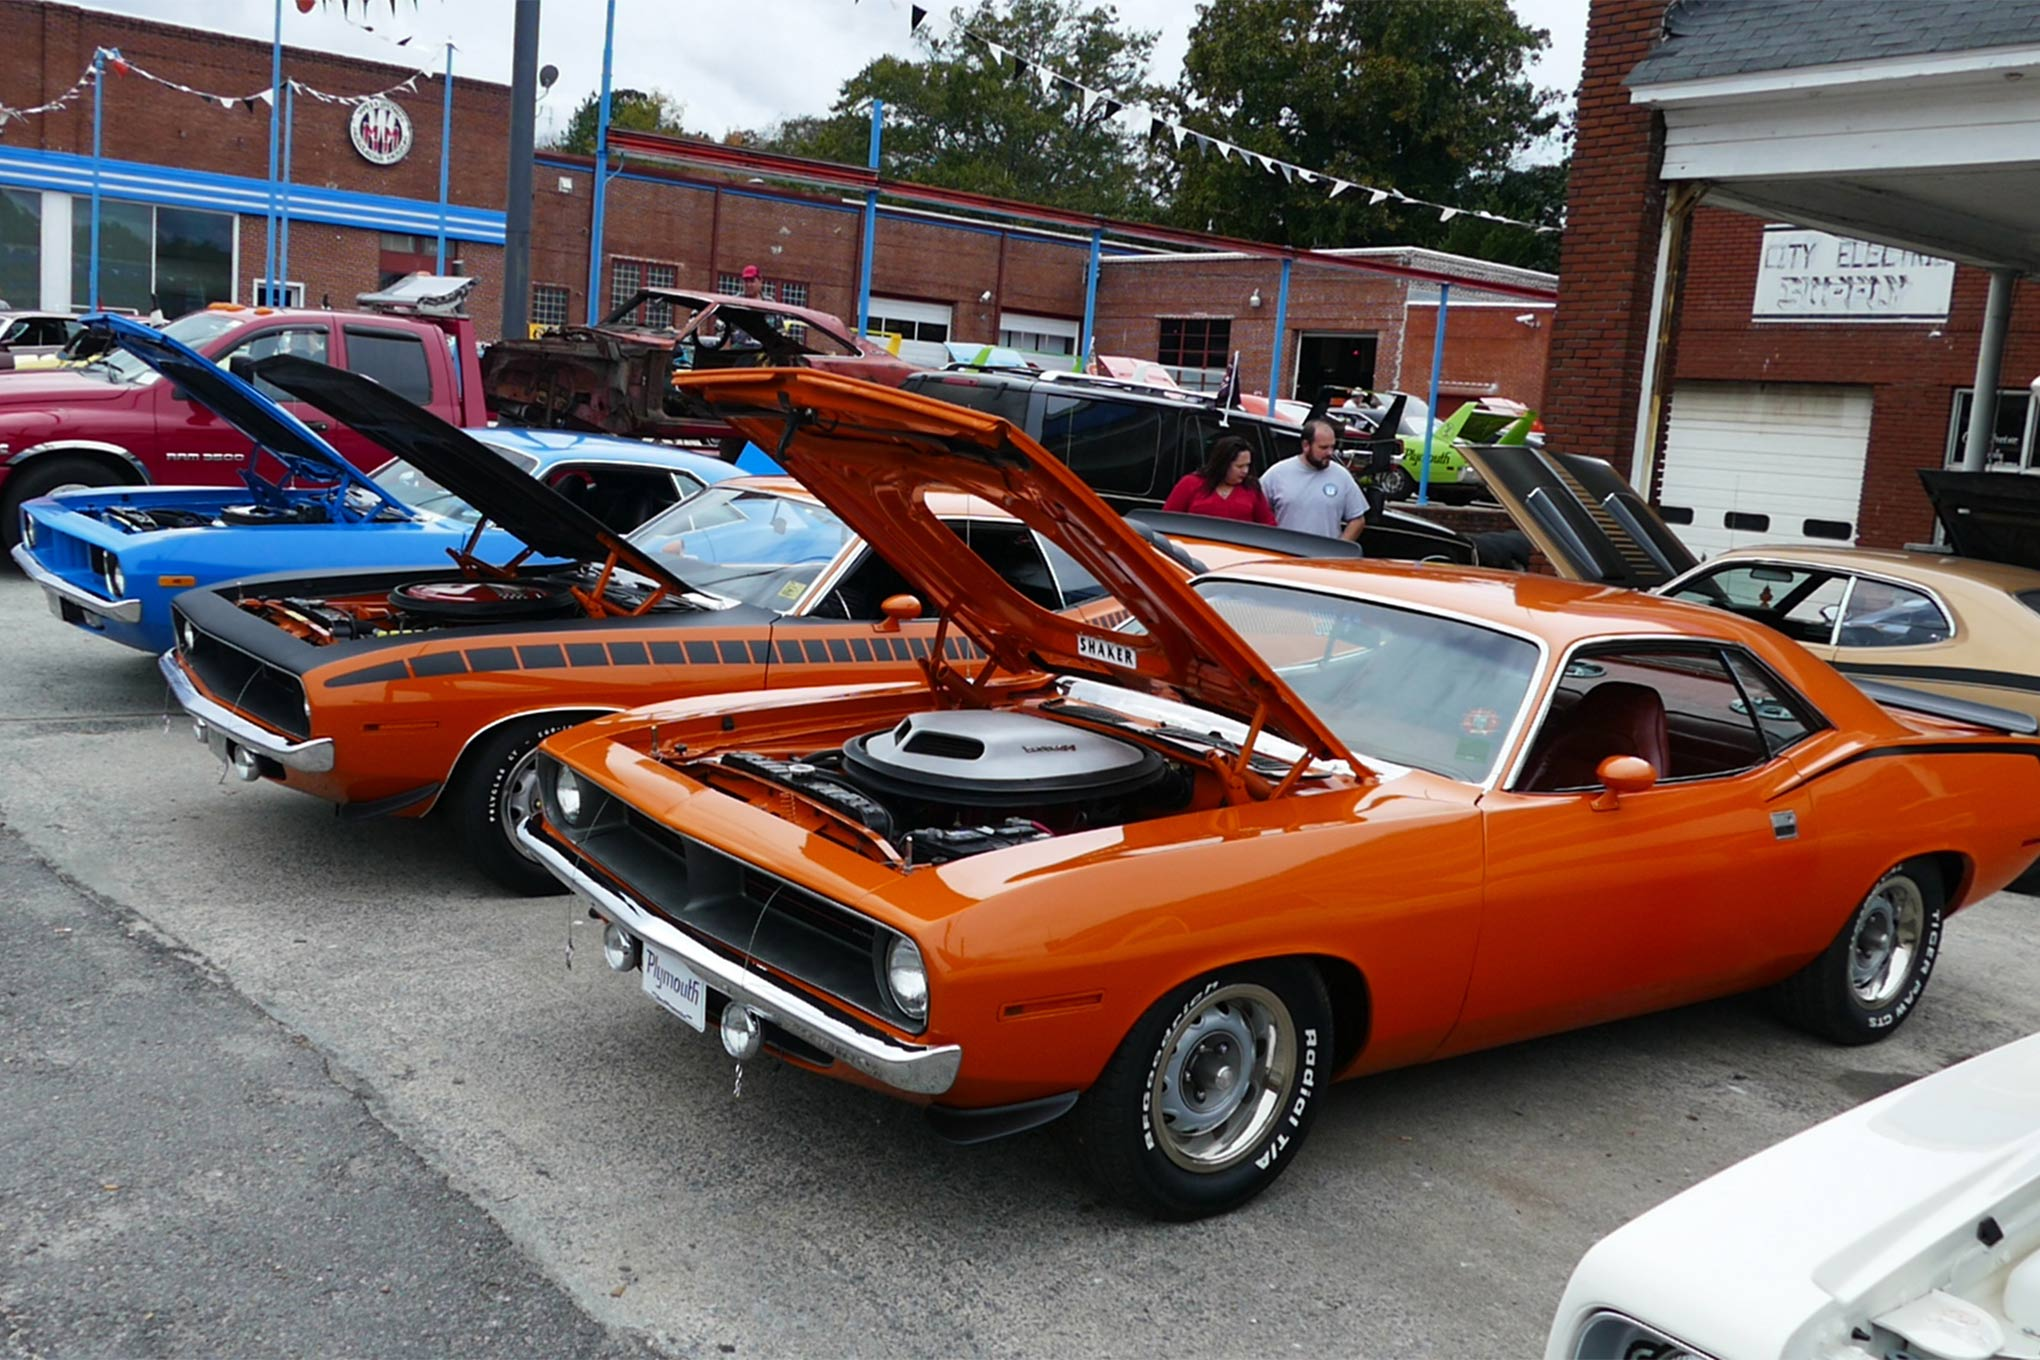 The side lot of the Wellborn Musclecar Museum was filled with cars on Saturday morning, as was the front lawn and main lot of the old dealership and the former Uniroyal/auto-repair business next door.